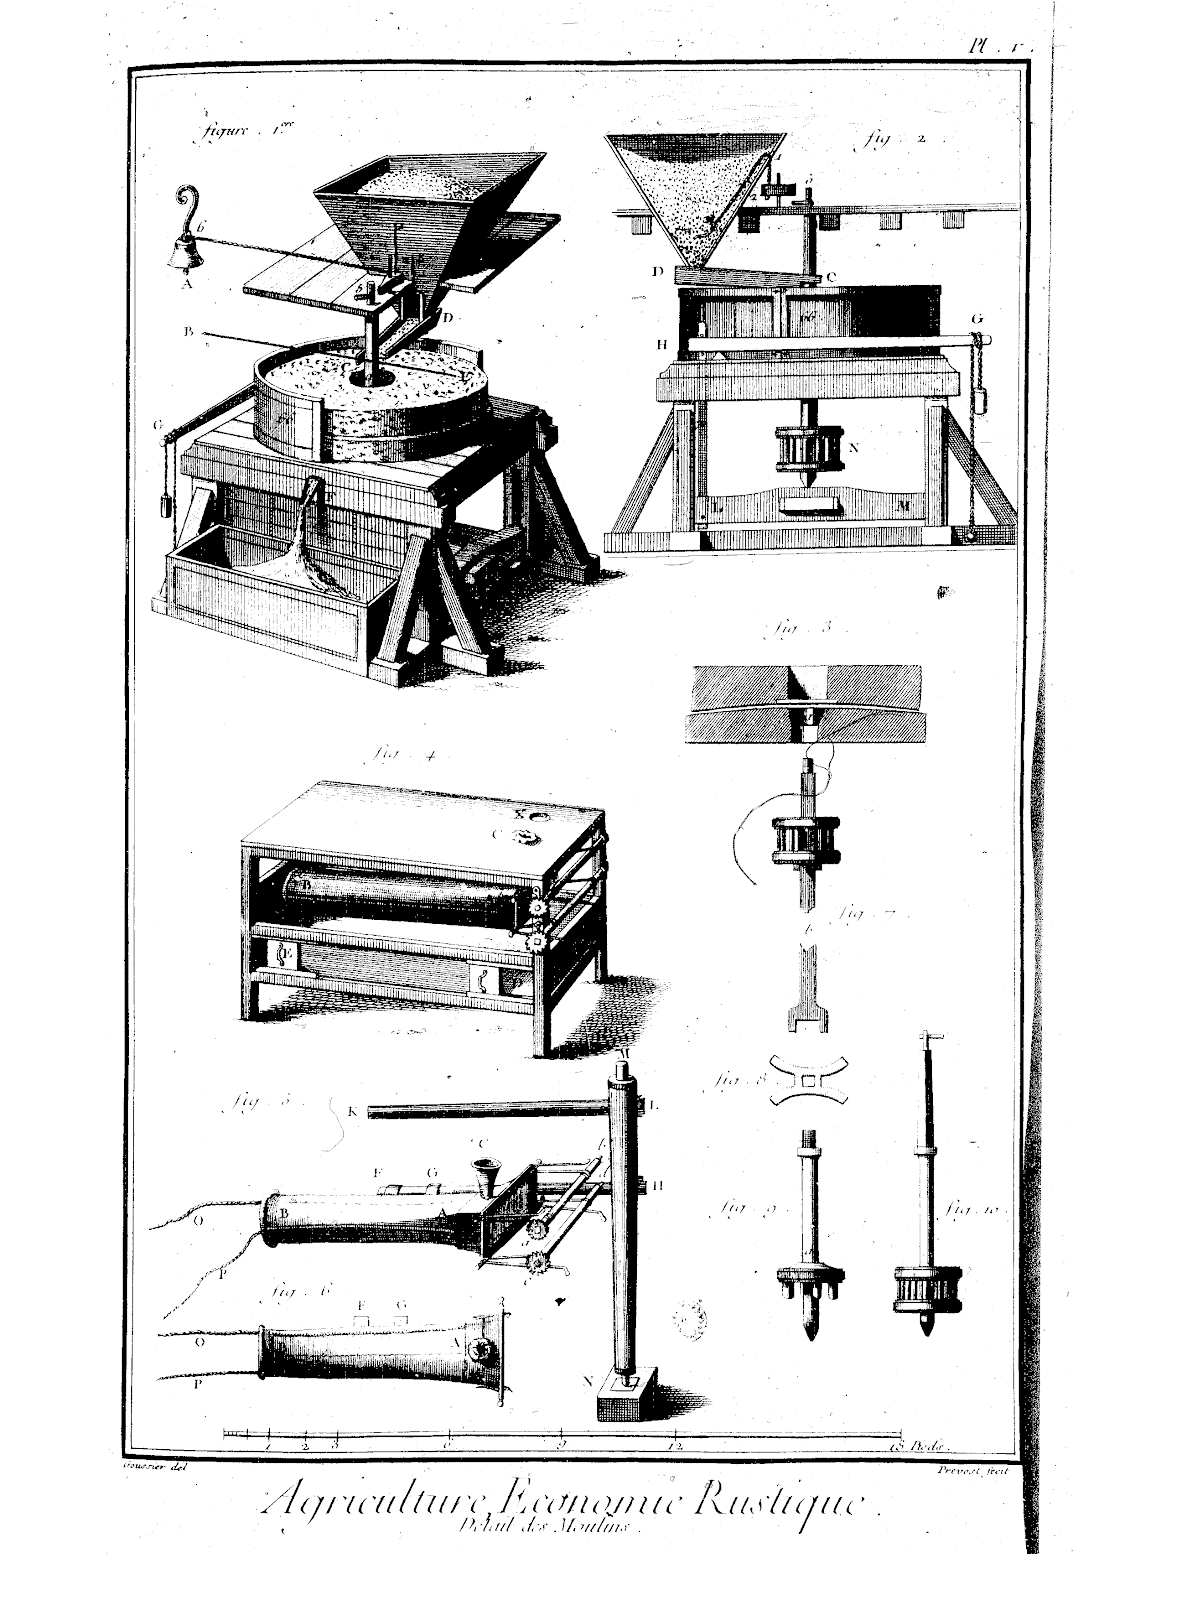 Technical diagram of agricultural equipment in one of the volumes of the Encyclopedia.